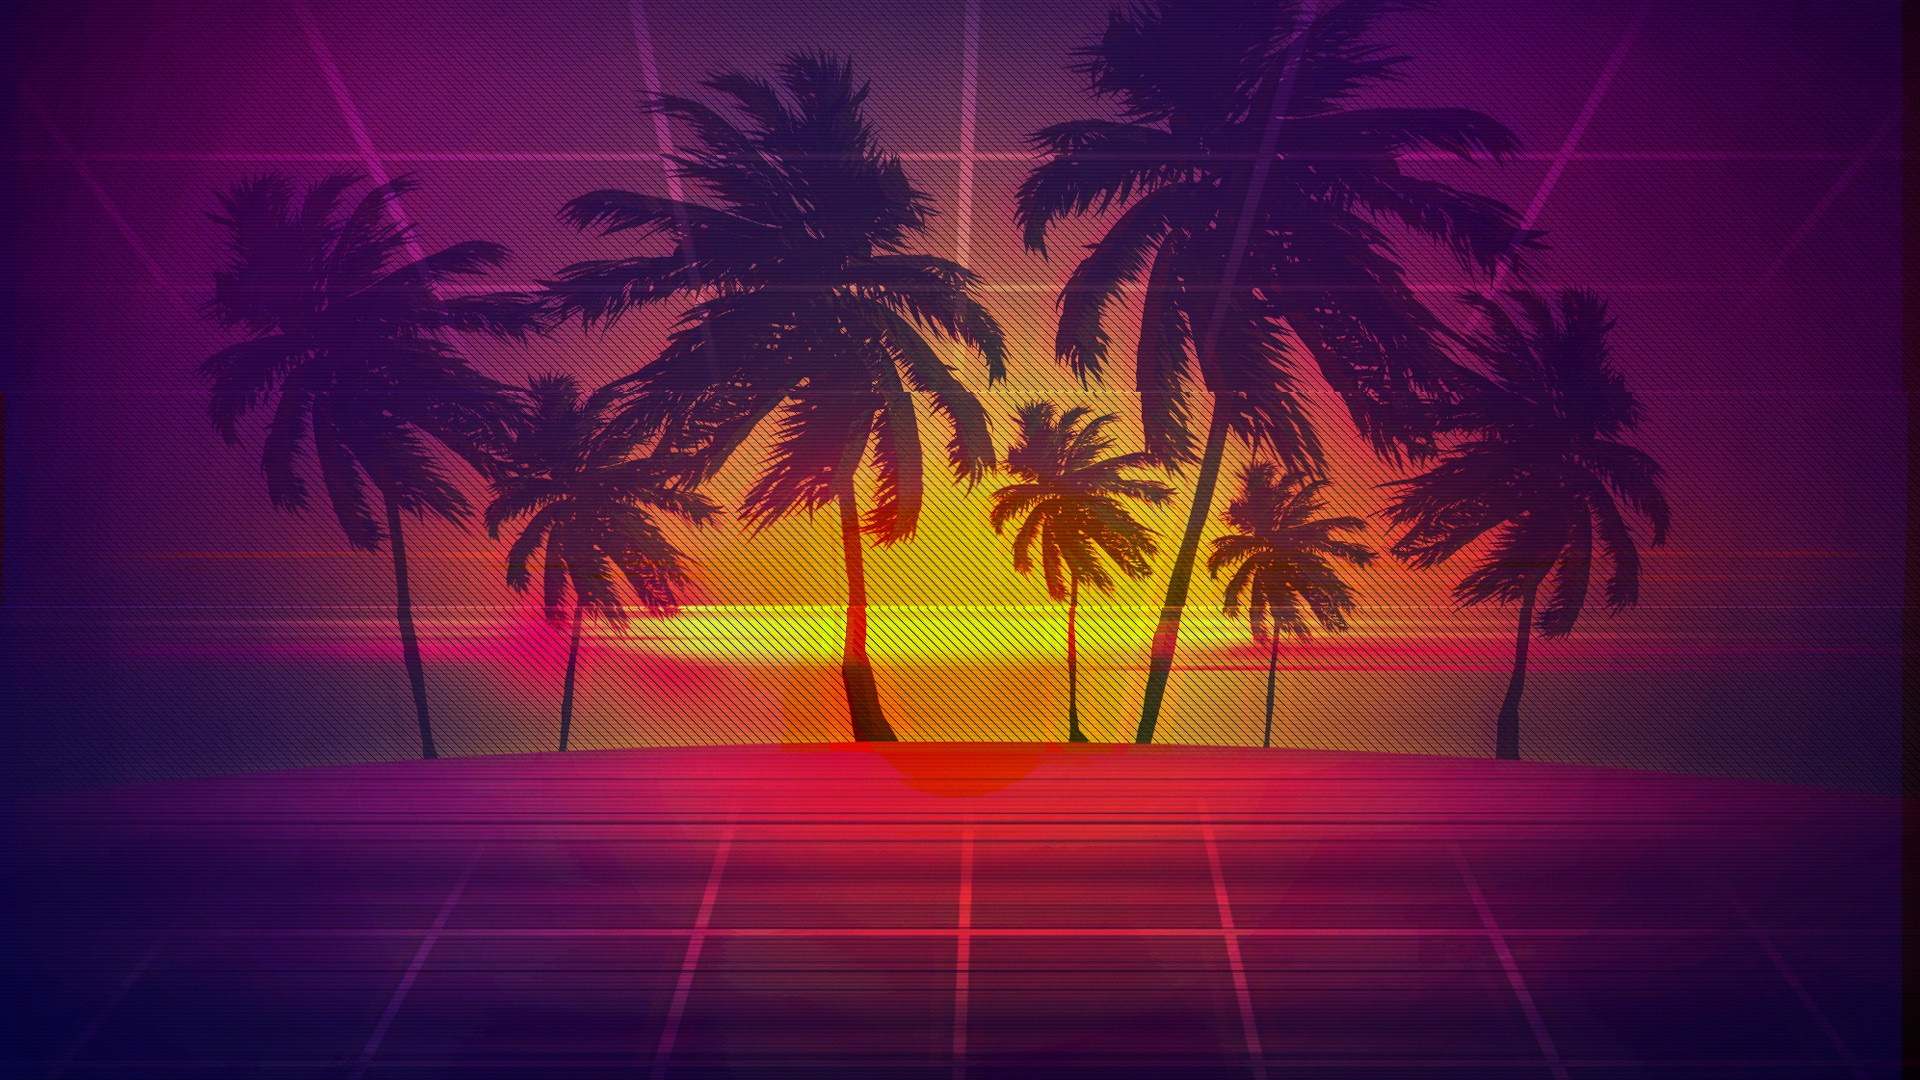 2973737-hotline-miami-wallpapers